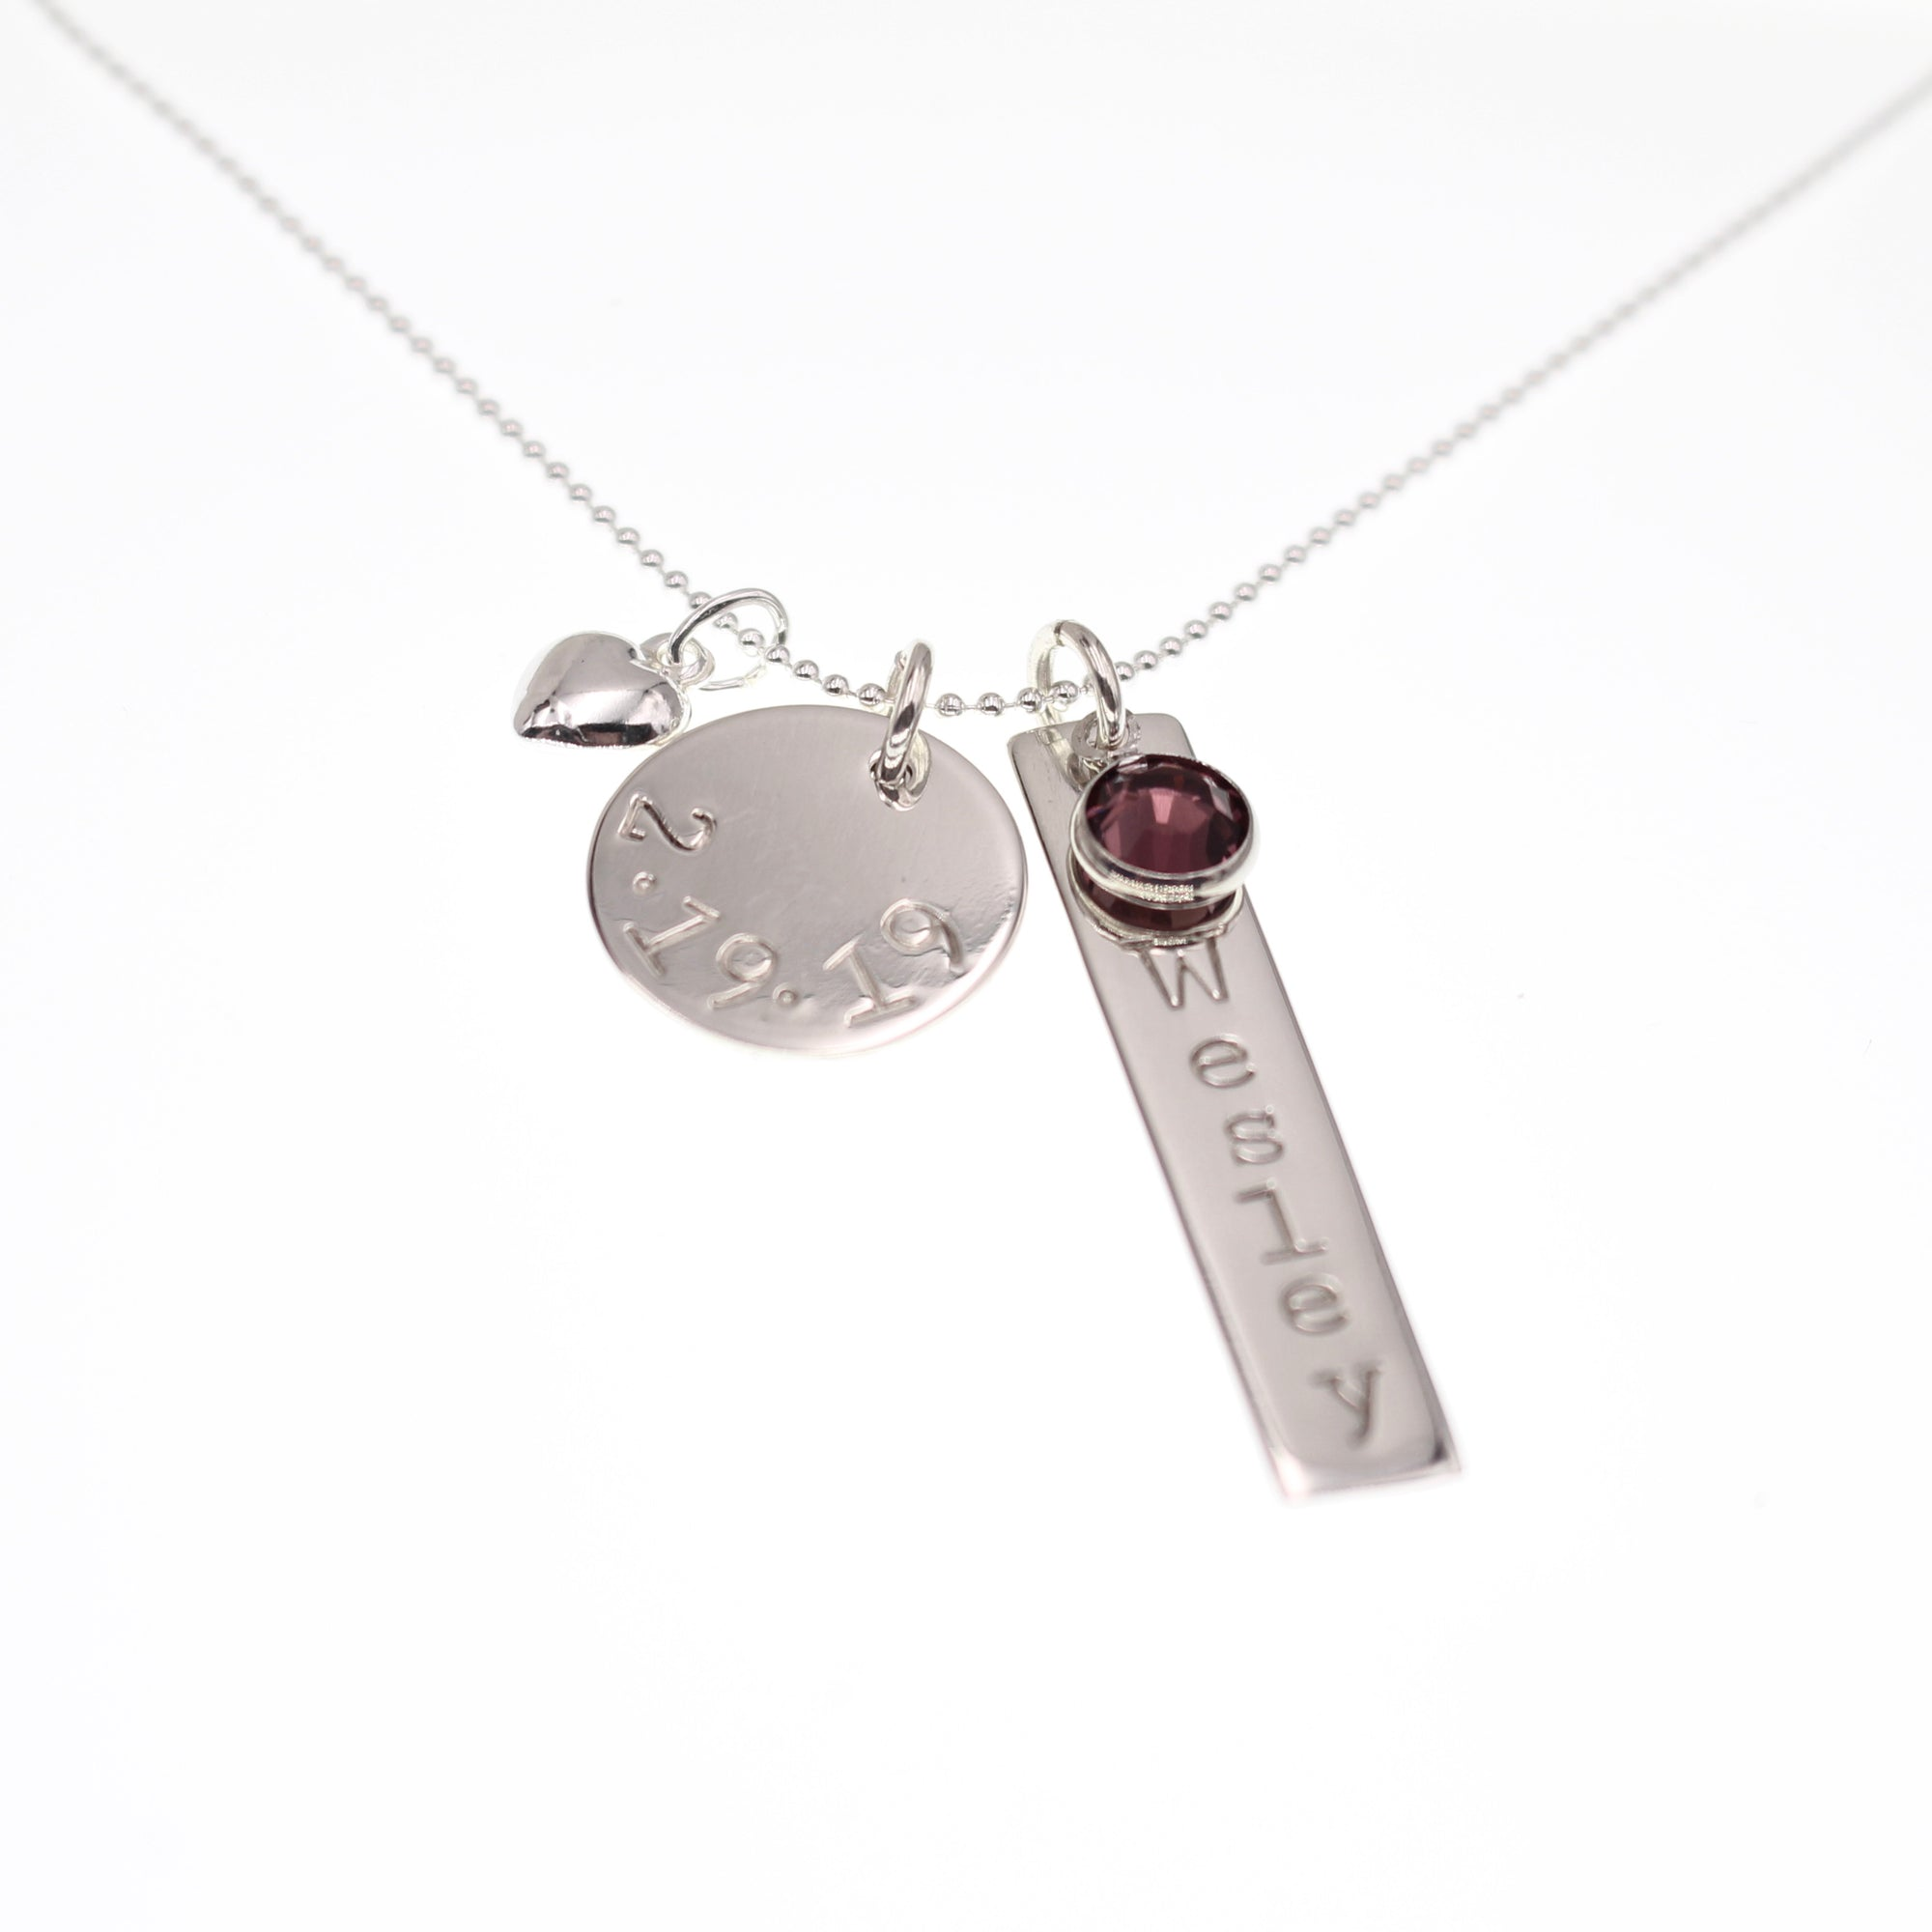 Disc & Tag Personalized Necklace - Sterling Silver - Love It Personalized